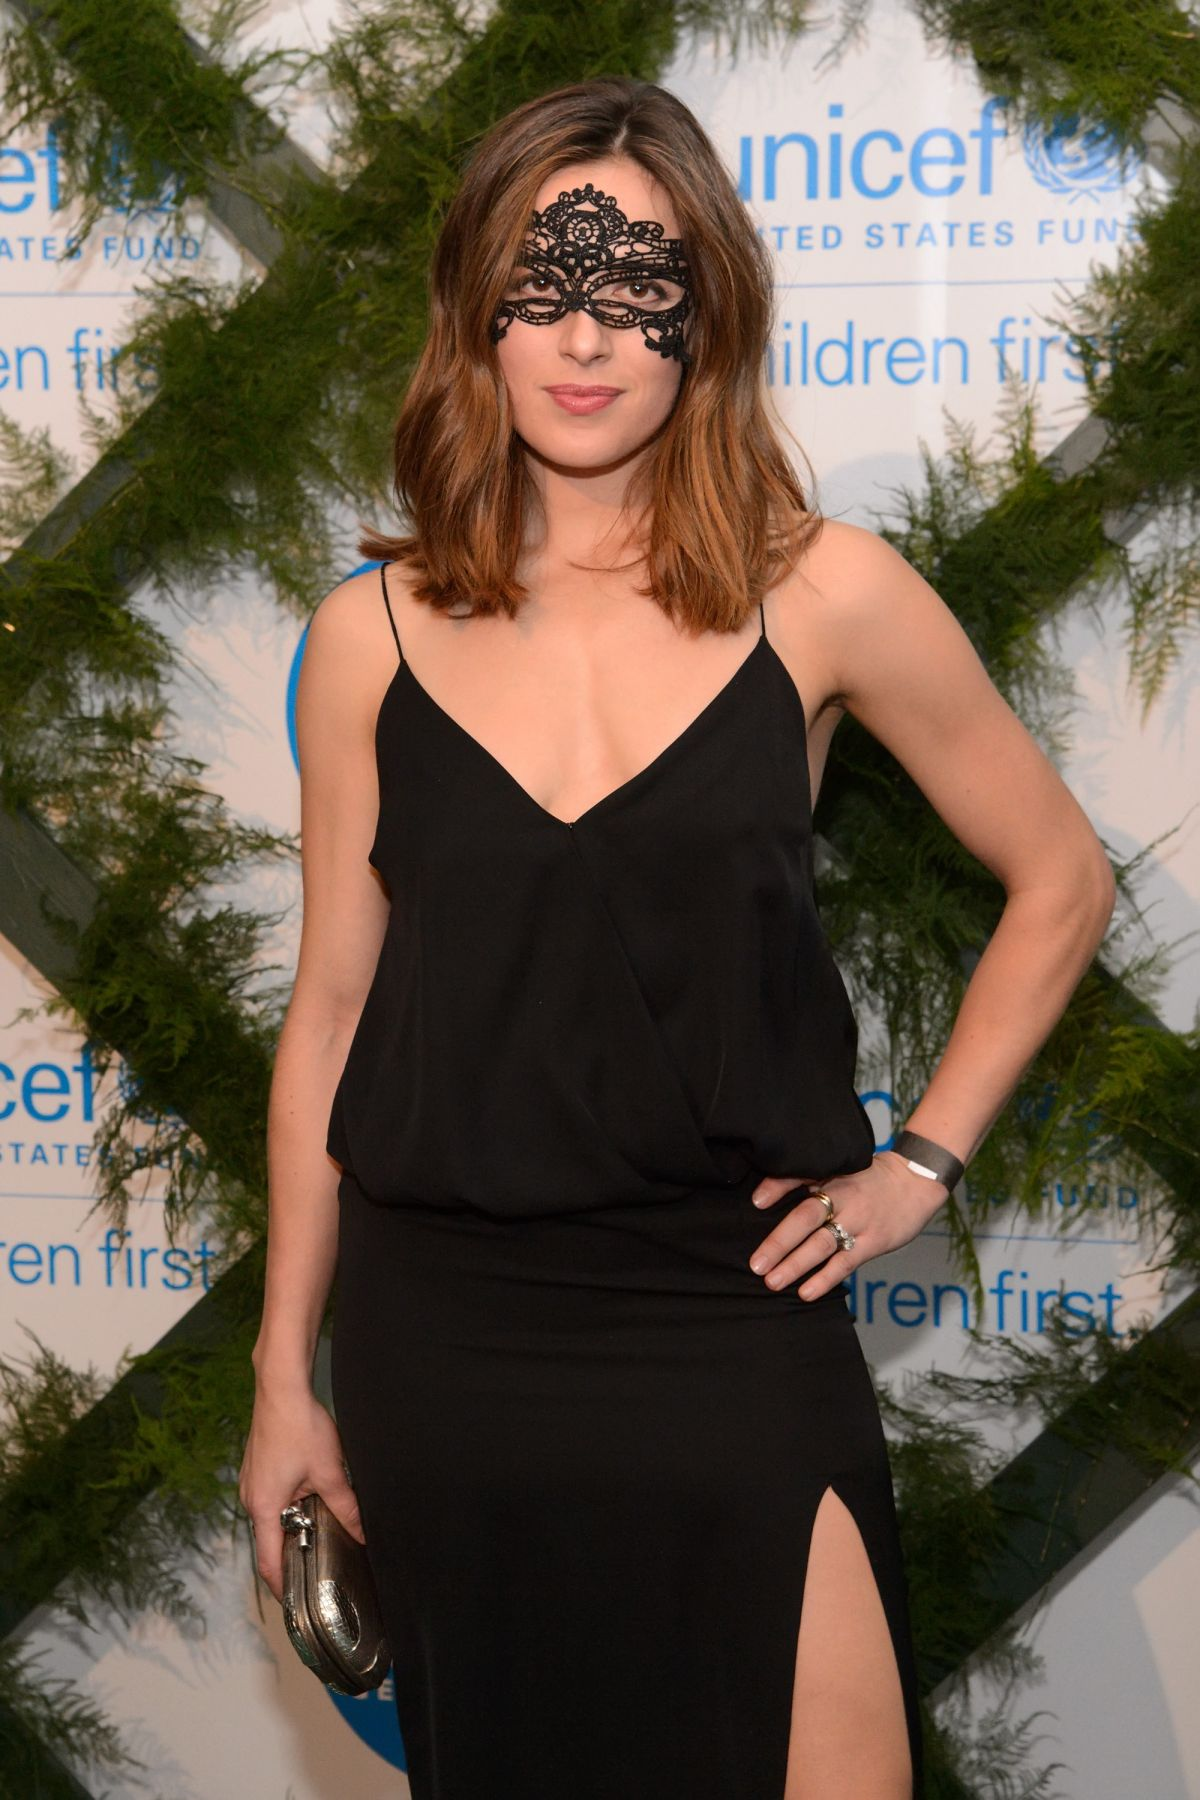 MARINA SQUERCIATI at Unicef Neverland Masquerade Ball in Chicago 10/16/2015